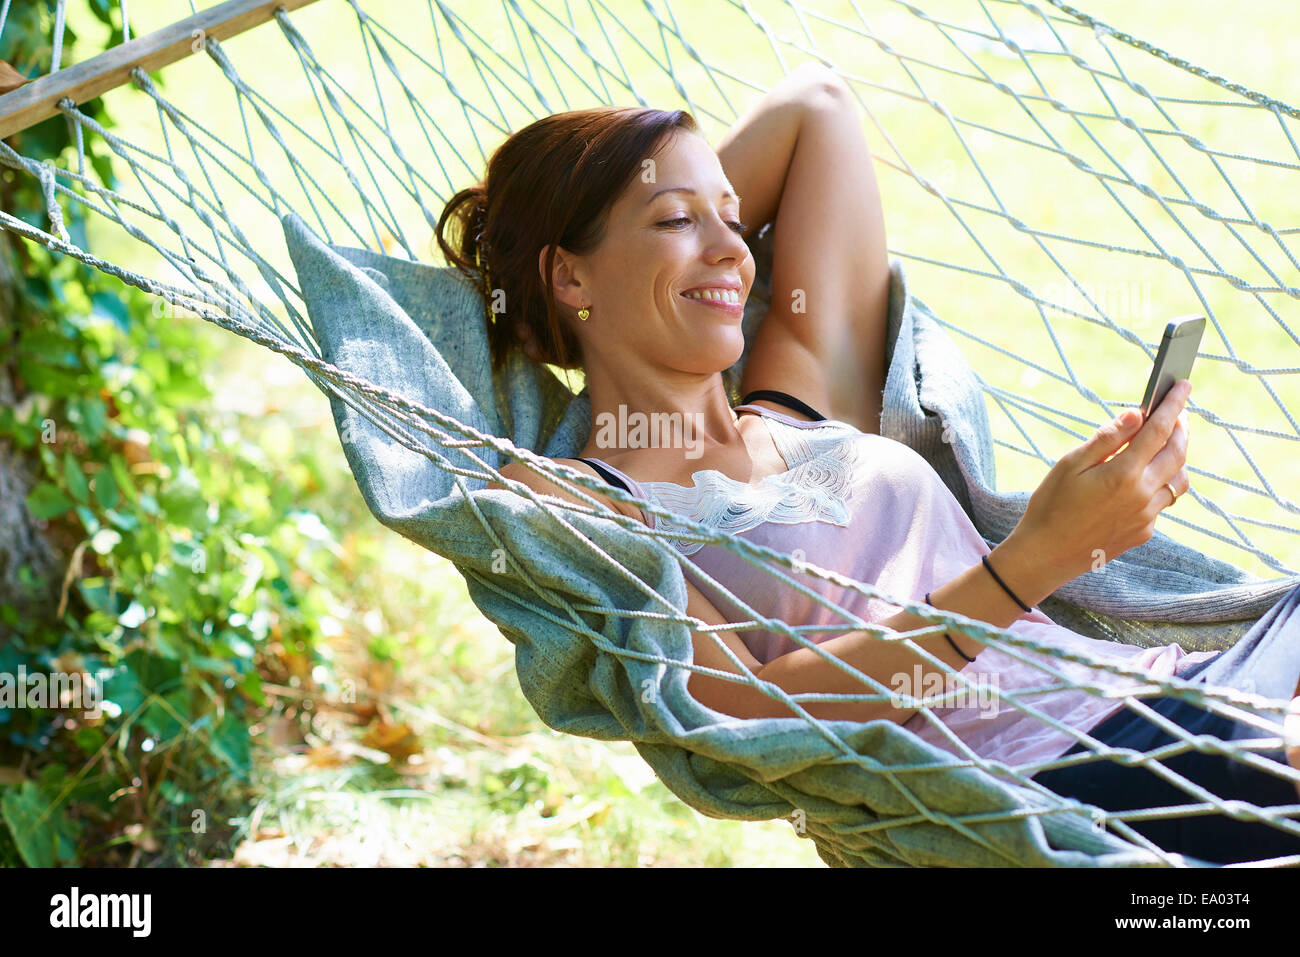 Mid adult woman reclining in garden hammock looking at smartphone - Stock Image